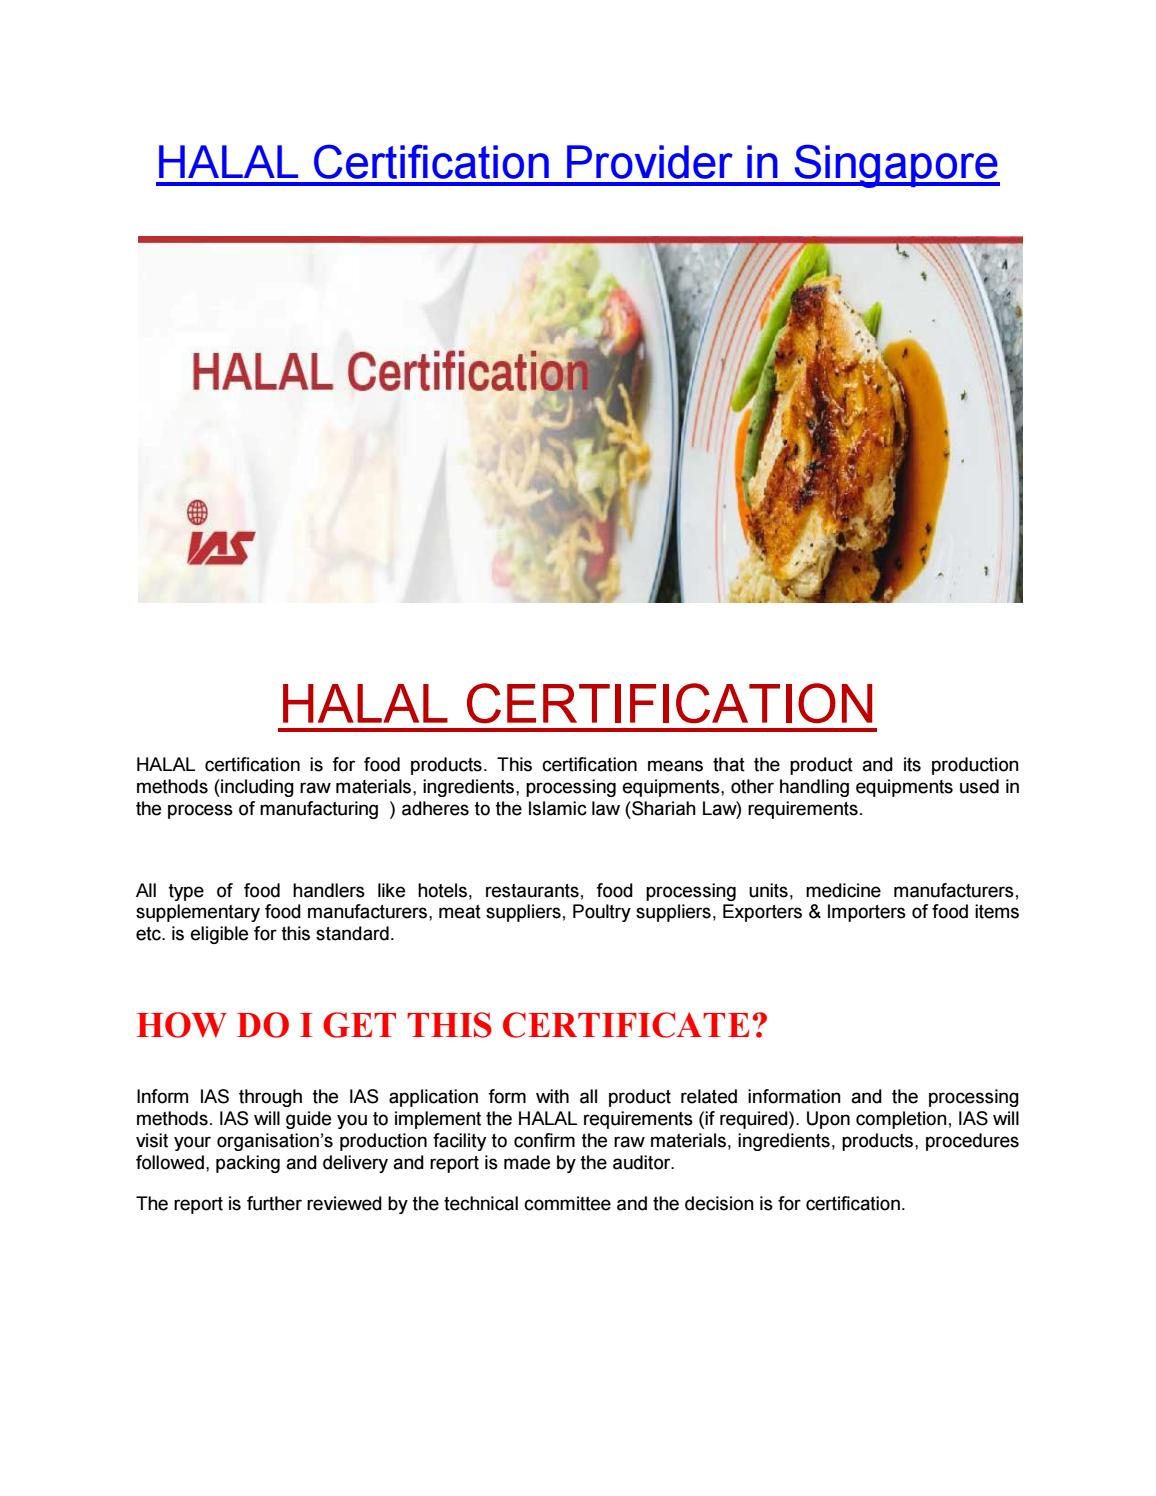 HALAL Certification Provider in Singapore by iassingapore